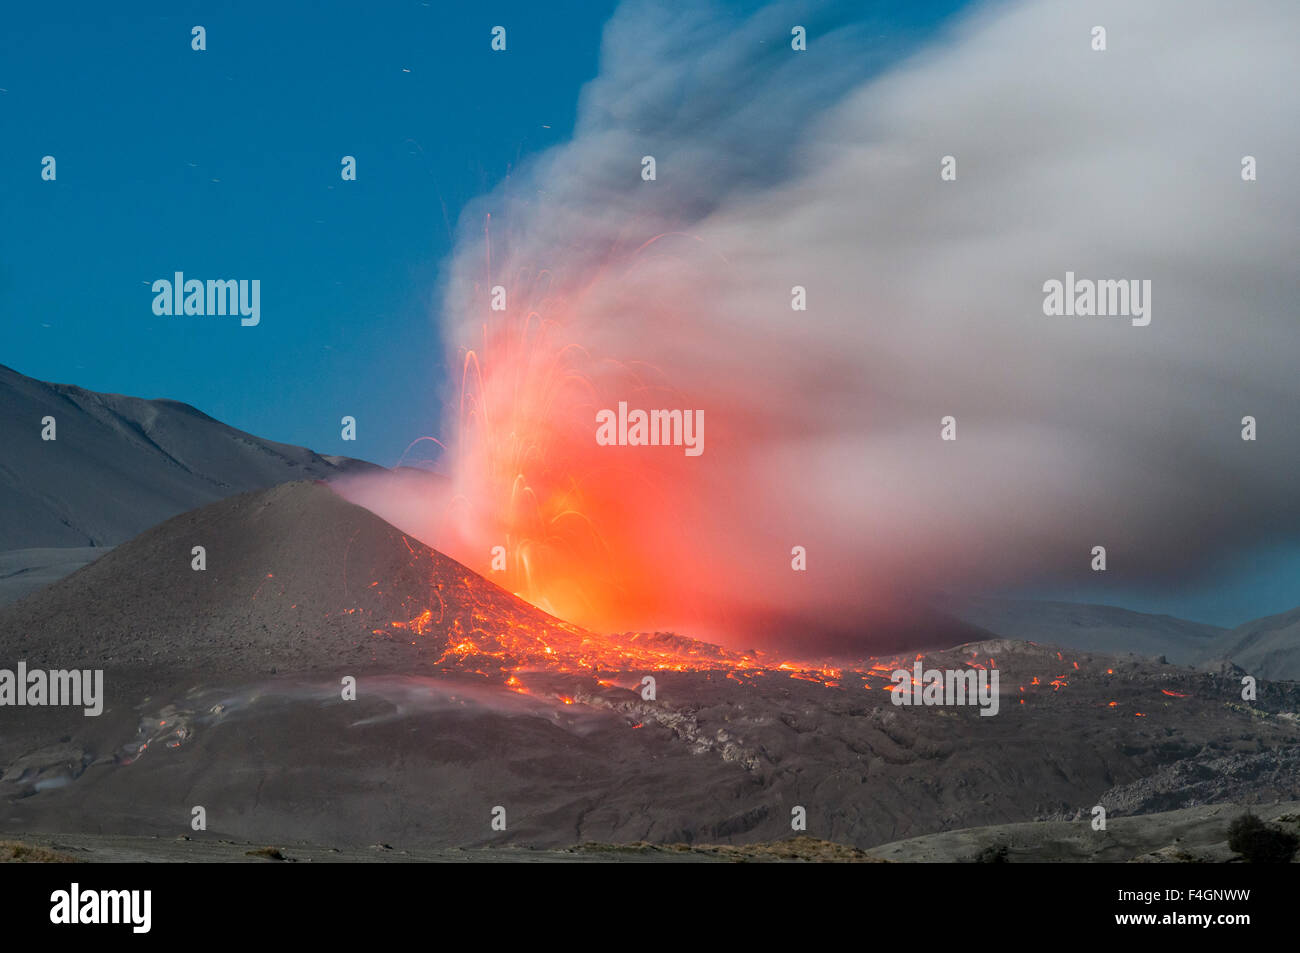 caulle volcano in eruption, the lakes region, chile - Stock Image